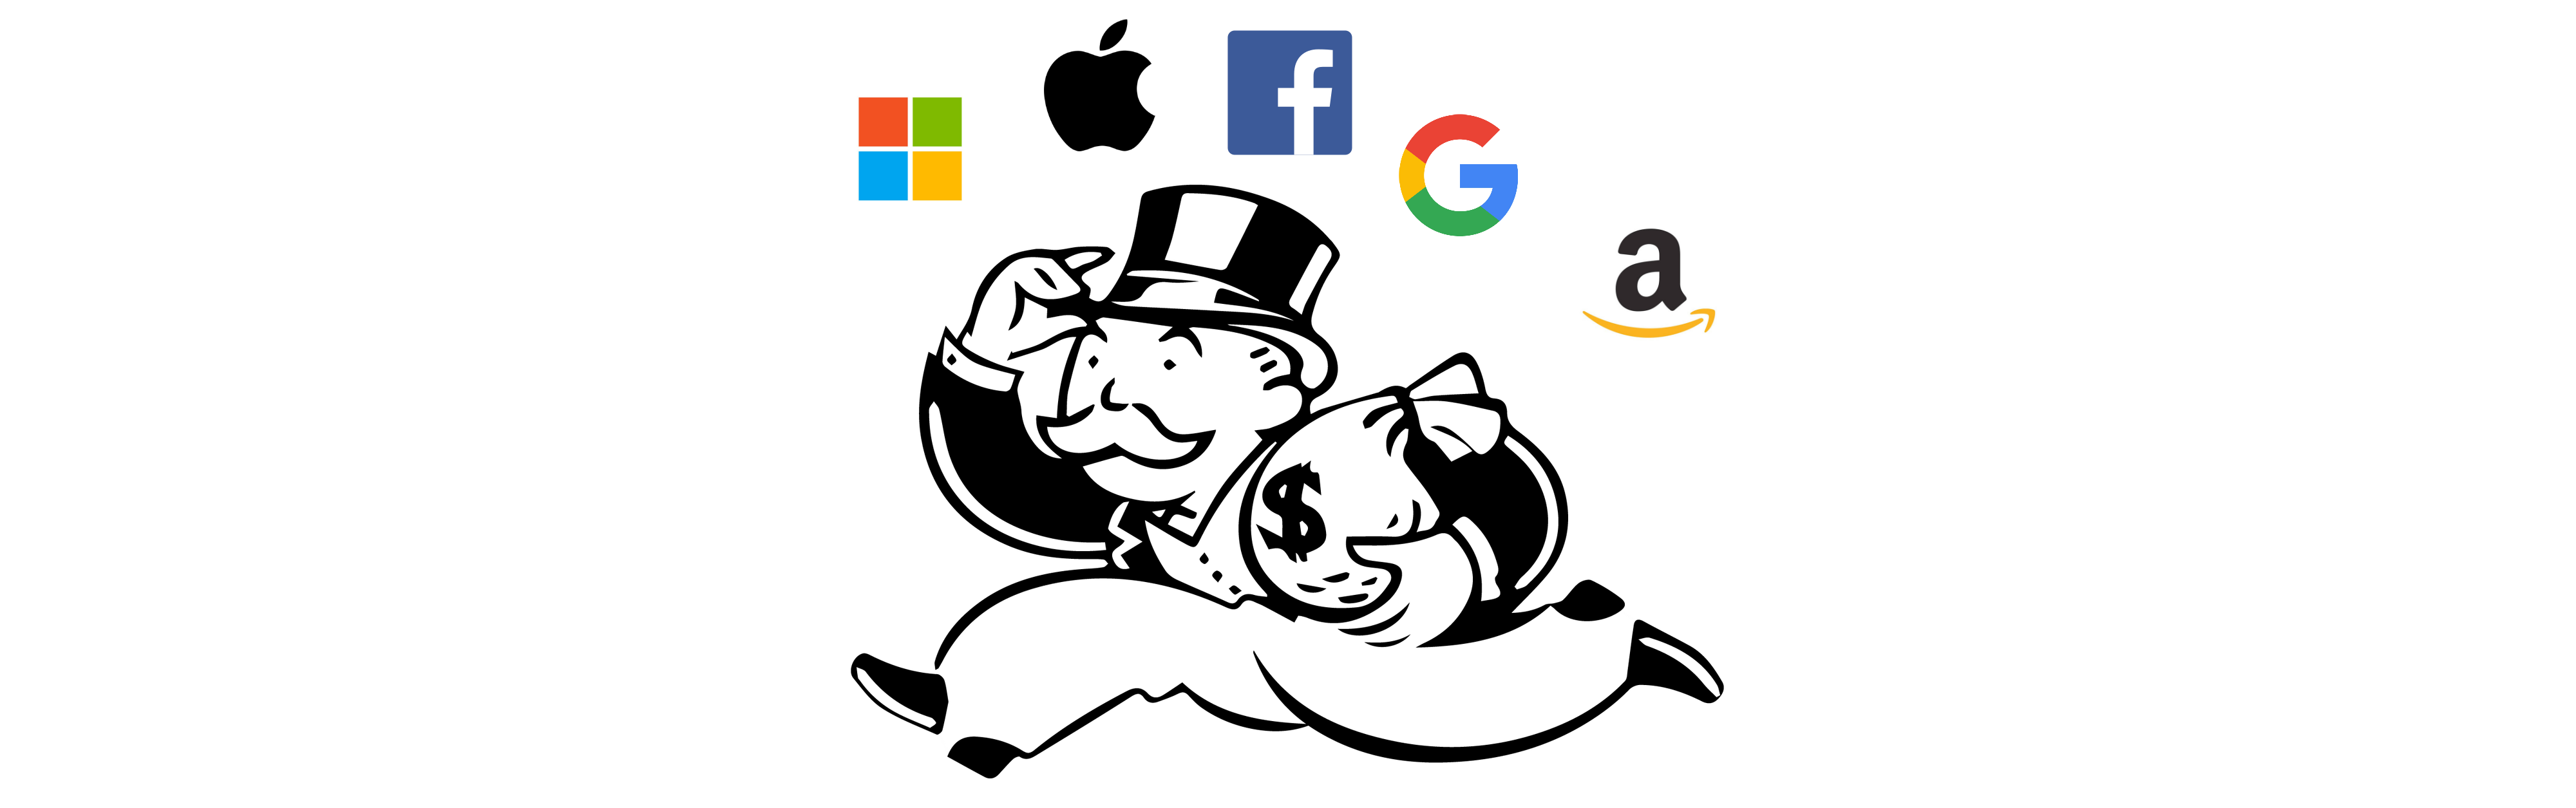 u0026 39 big tech u0026 39  isn u0026 39 t one big monopoly  u2013 it u0026 39 s 5 companies all